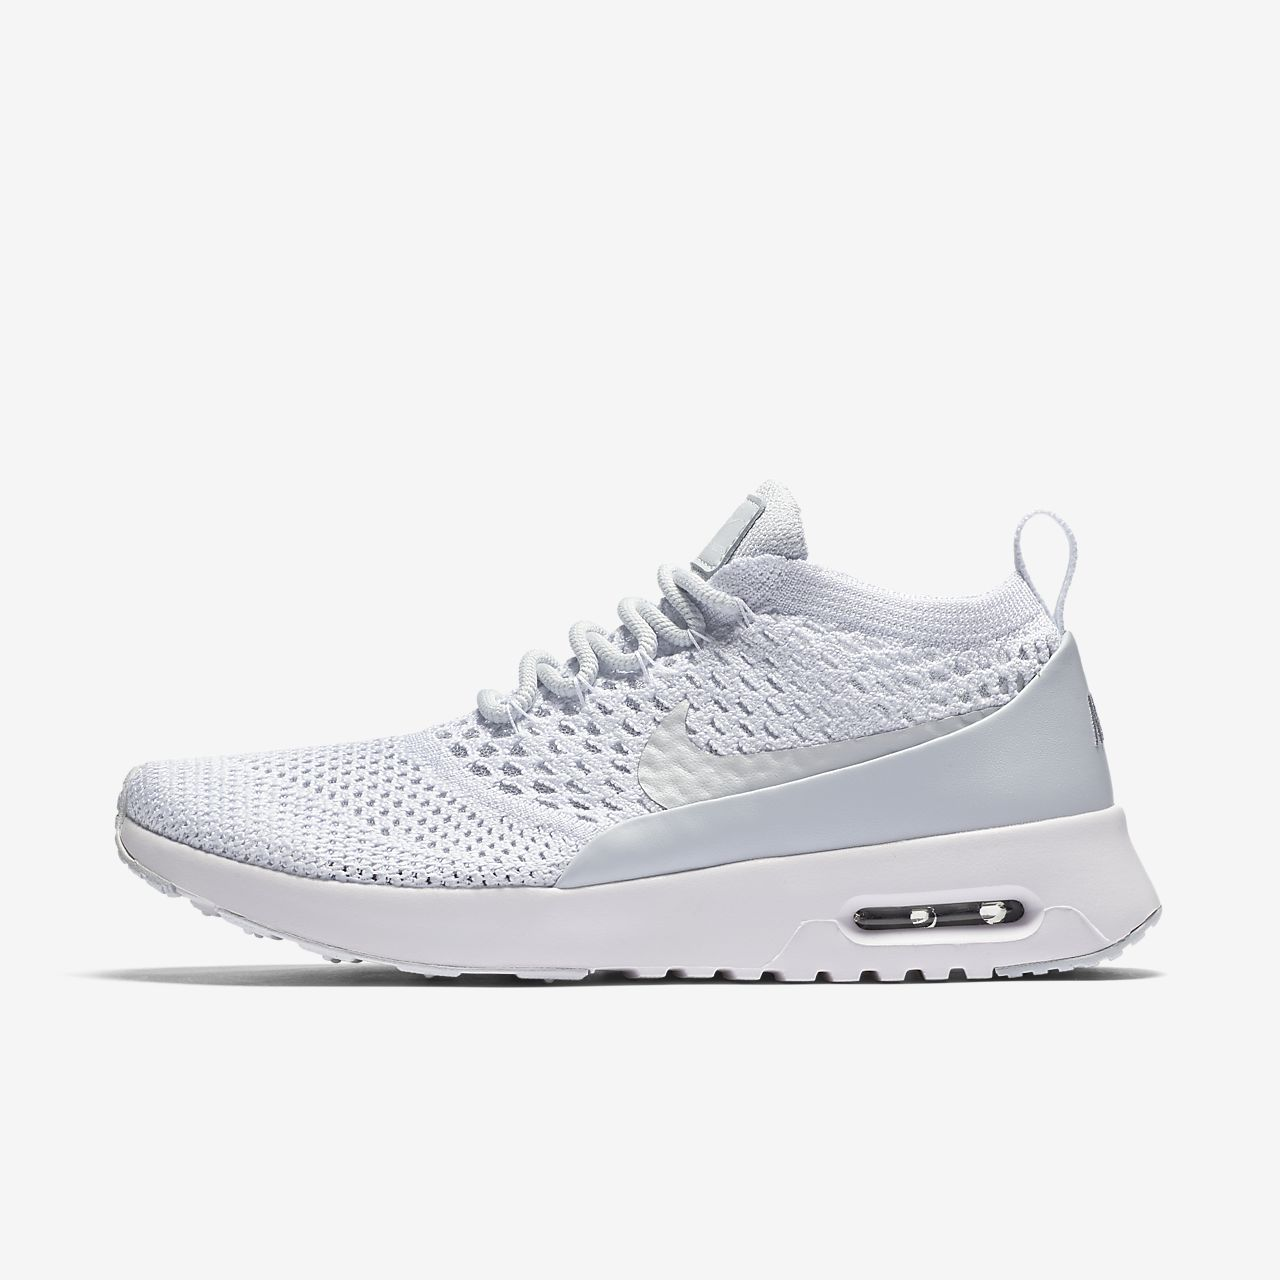 air max thea ultra se nz